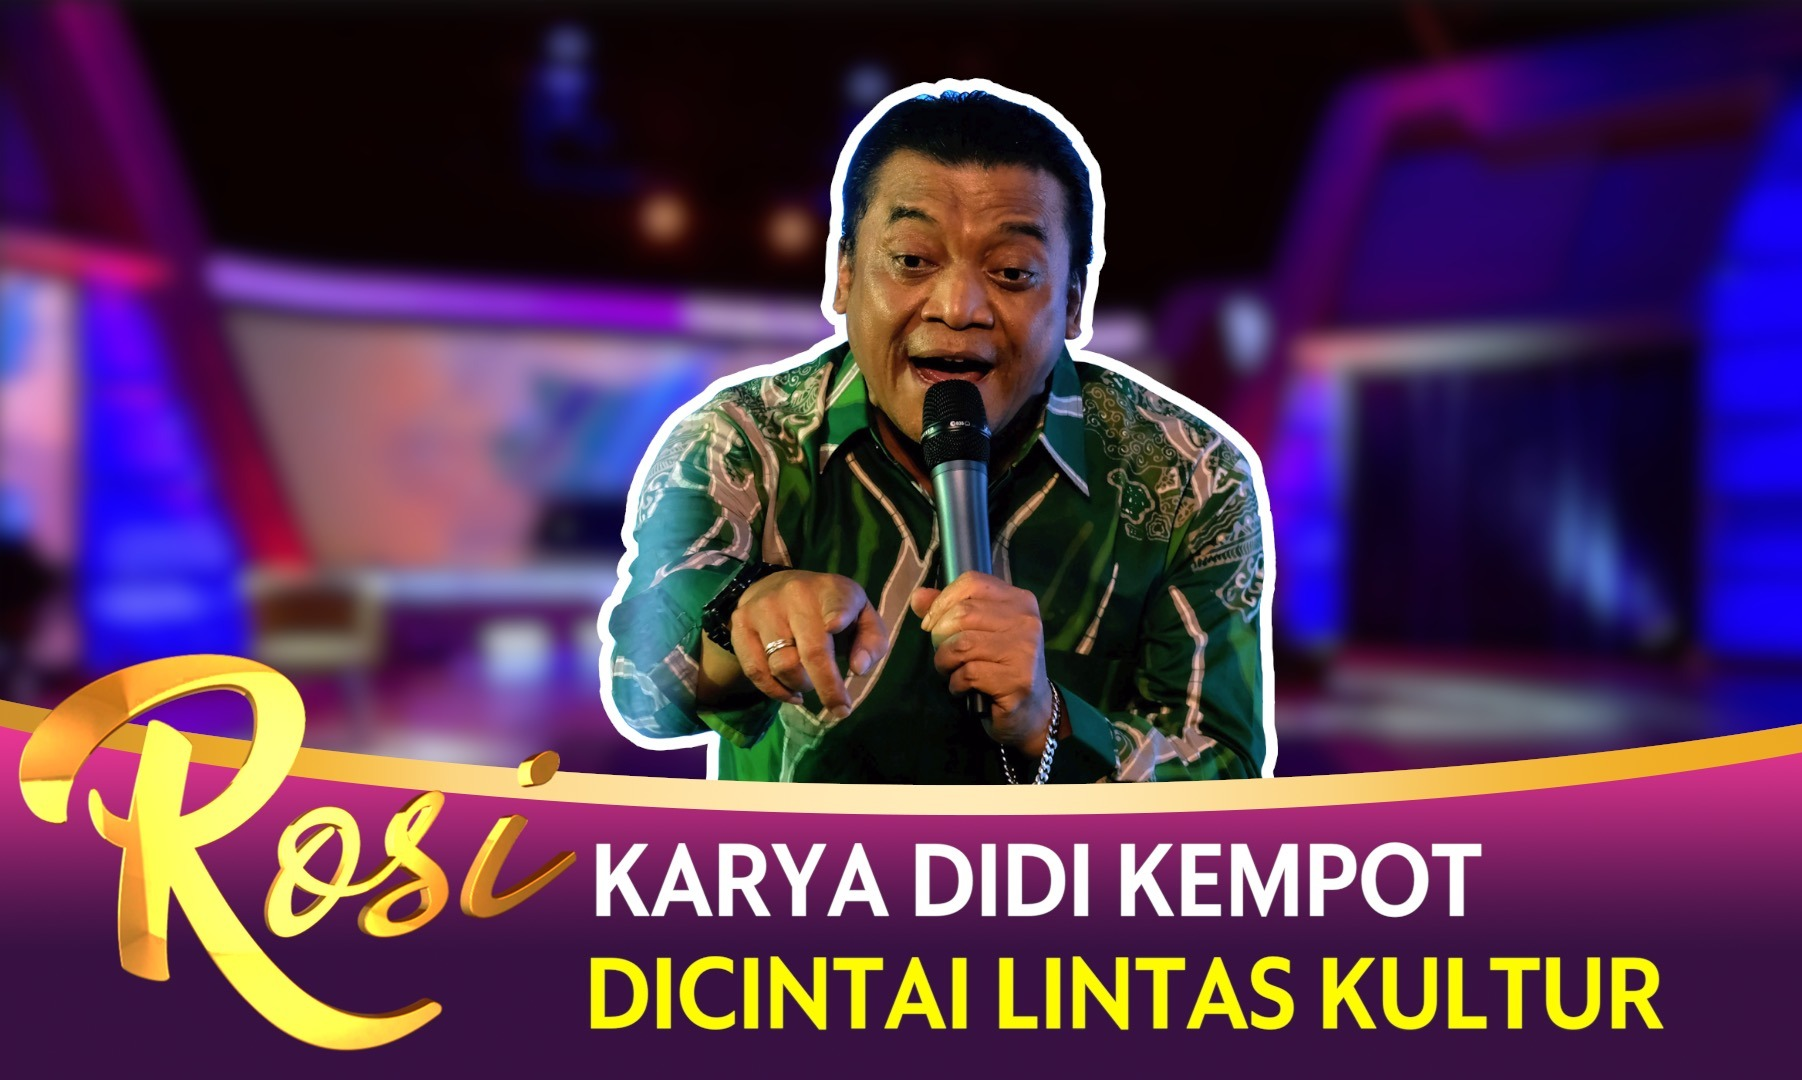 tribute-to-didi-kempot-the-godfather-of-broken-heart-bag-5